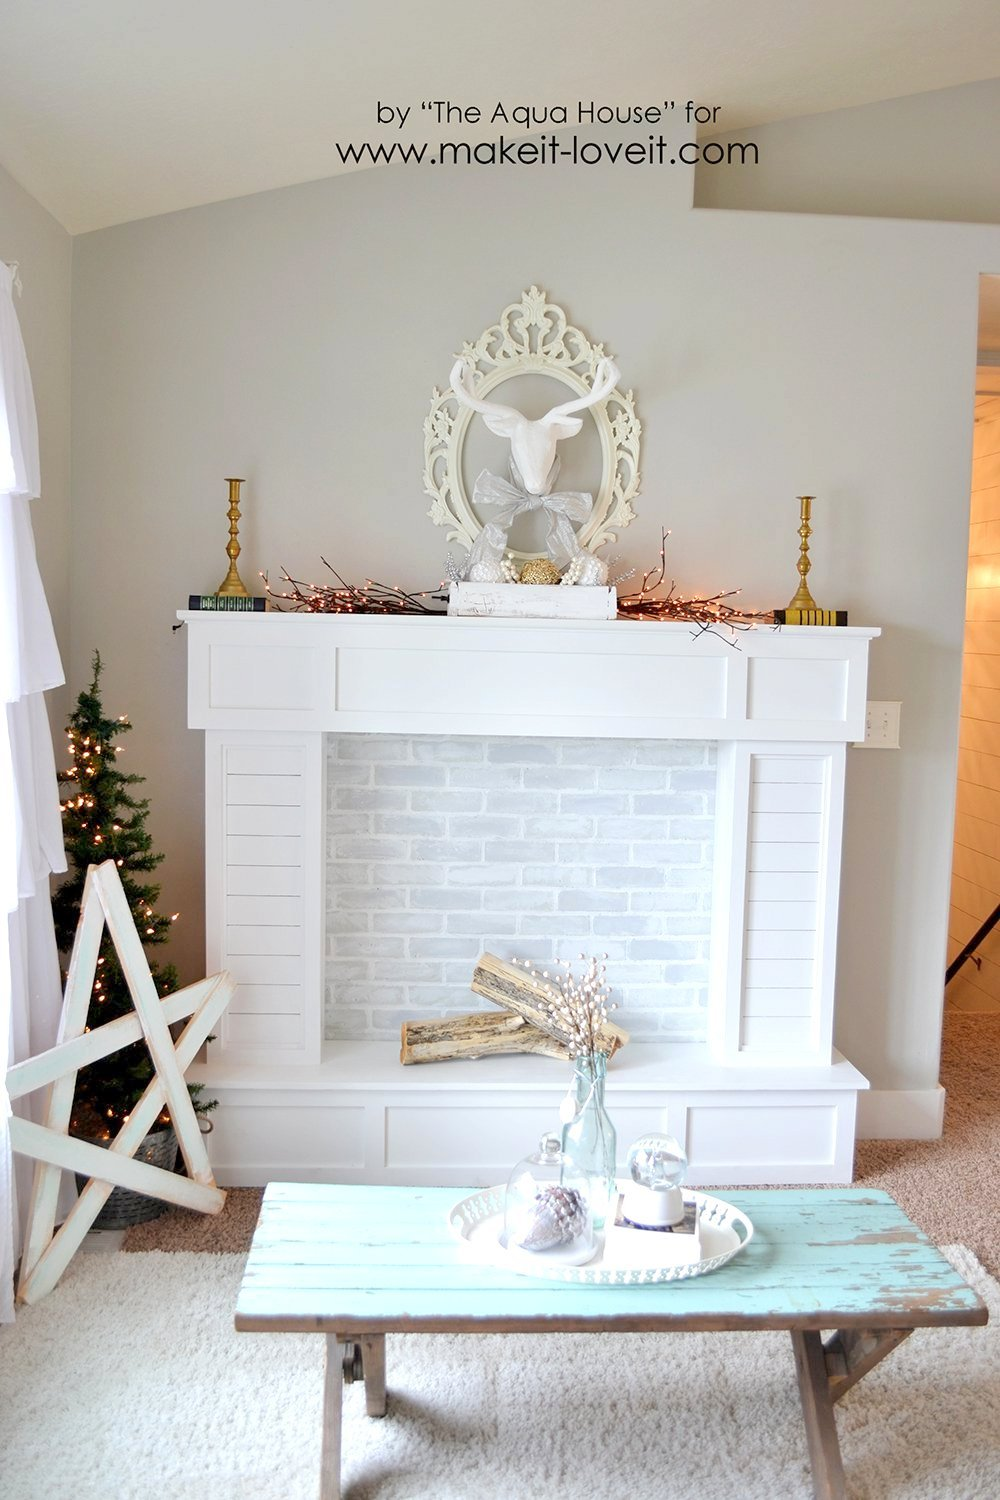 the so is thewhitebuffalostylingco fireplace faux did far image fireplaces room diy house or instagram in living things we of time up my on our blog surround shows about com one it every favorite